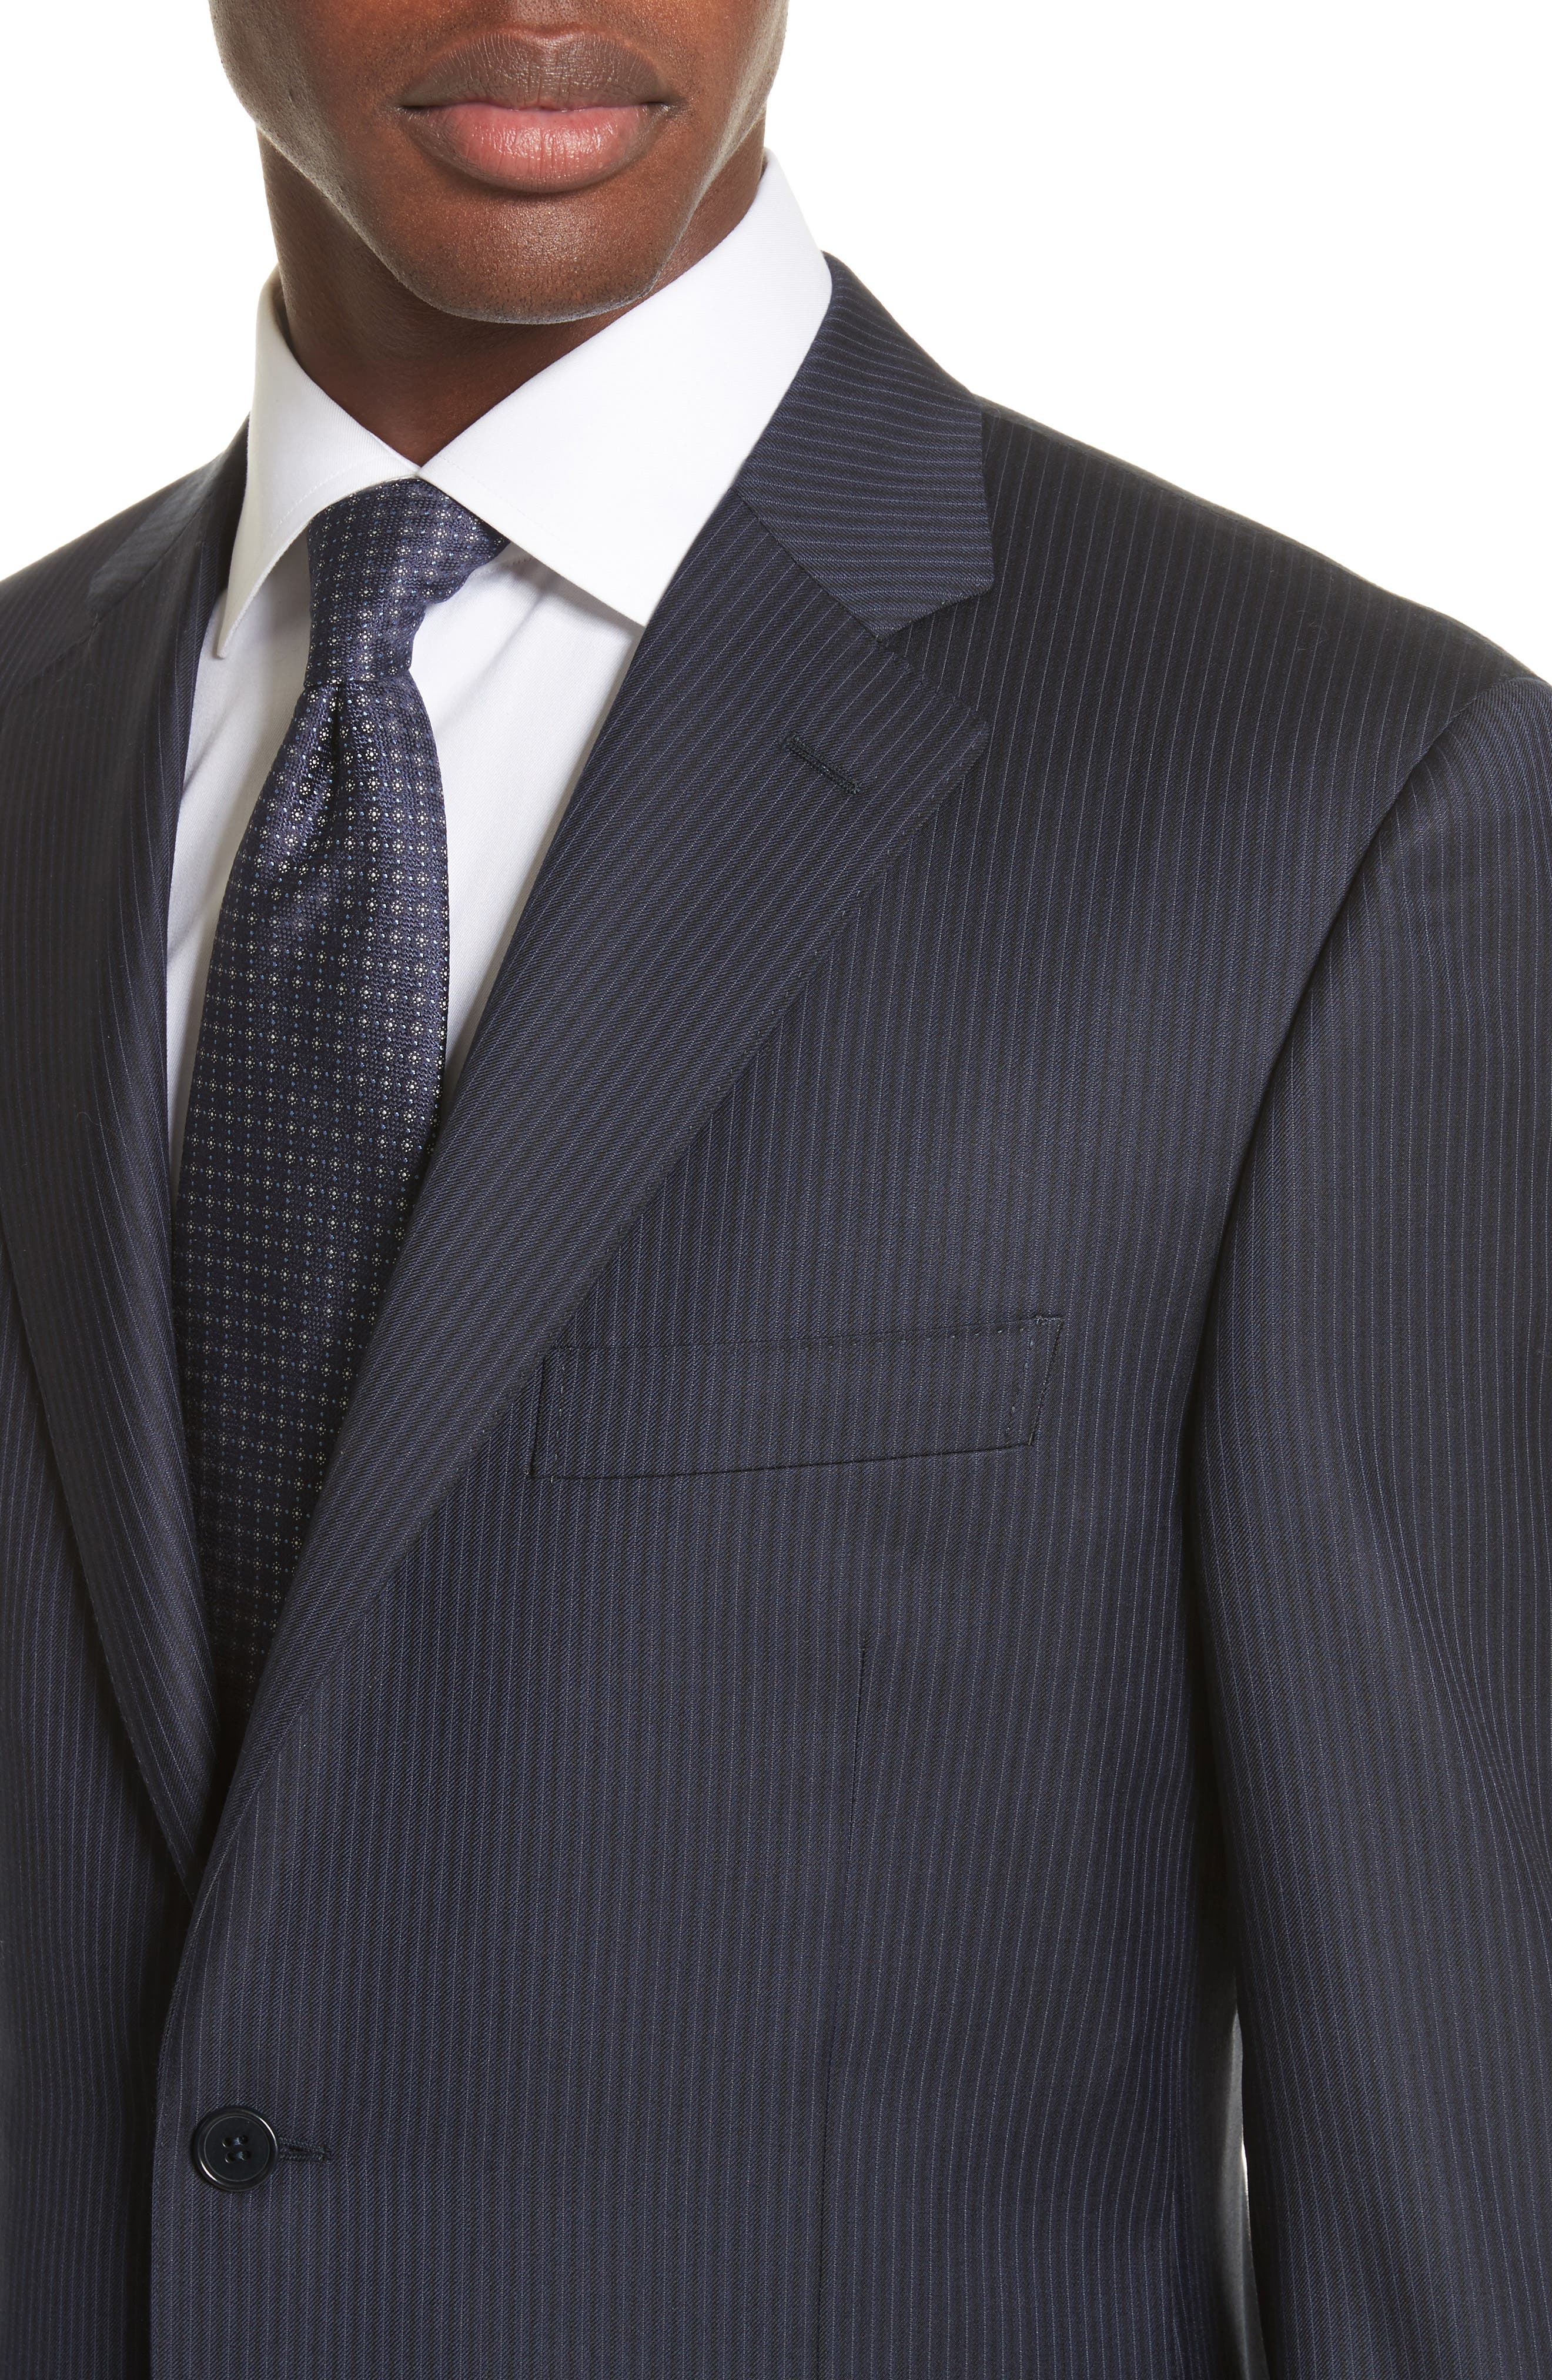 Classic Fit Stripe Wool Suit,                             Alternate thumbnail 4, color,                             Navy